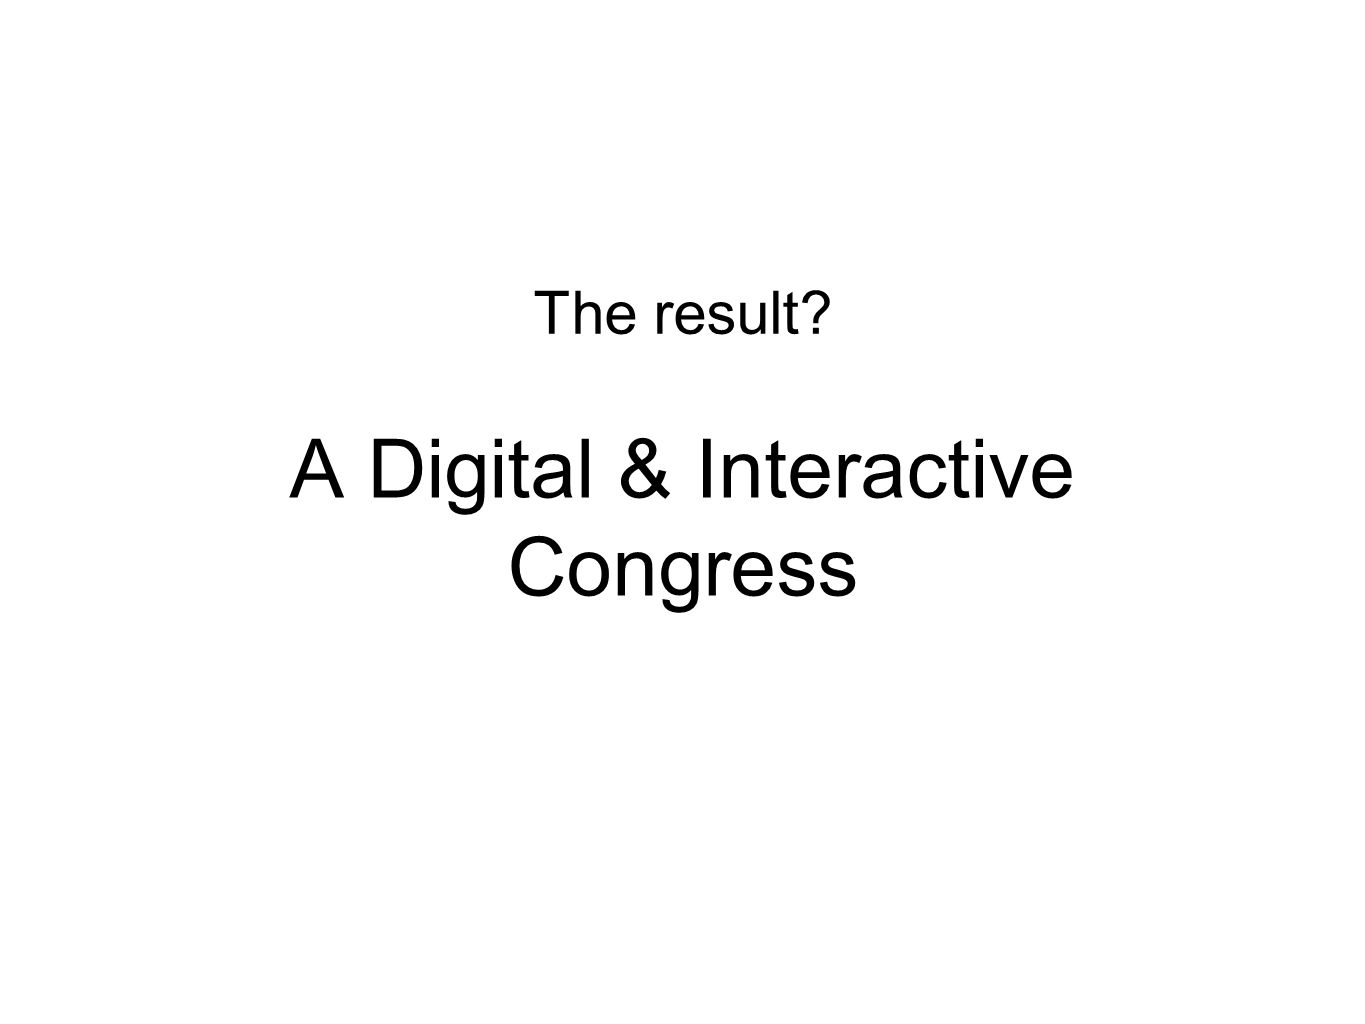 A Digital & Interactive Congress The result?